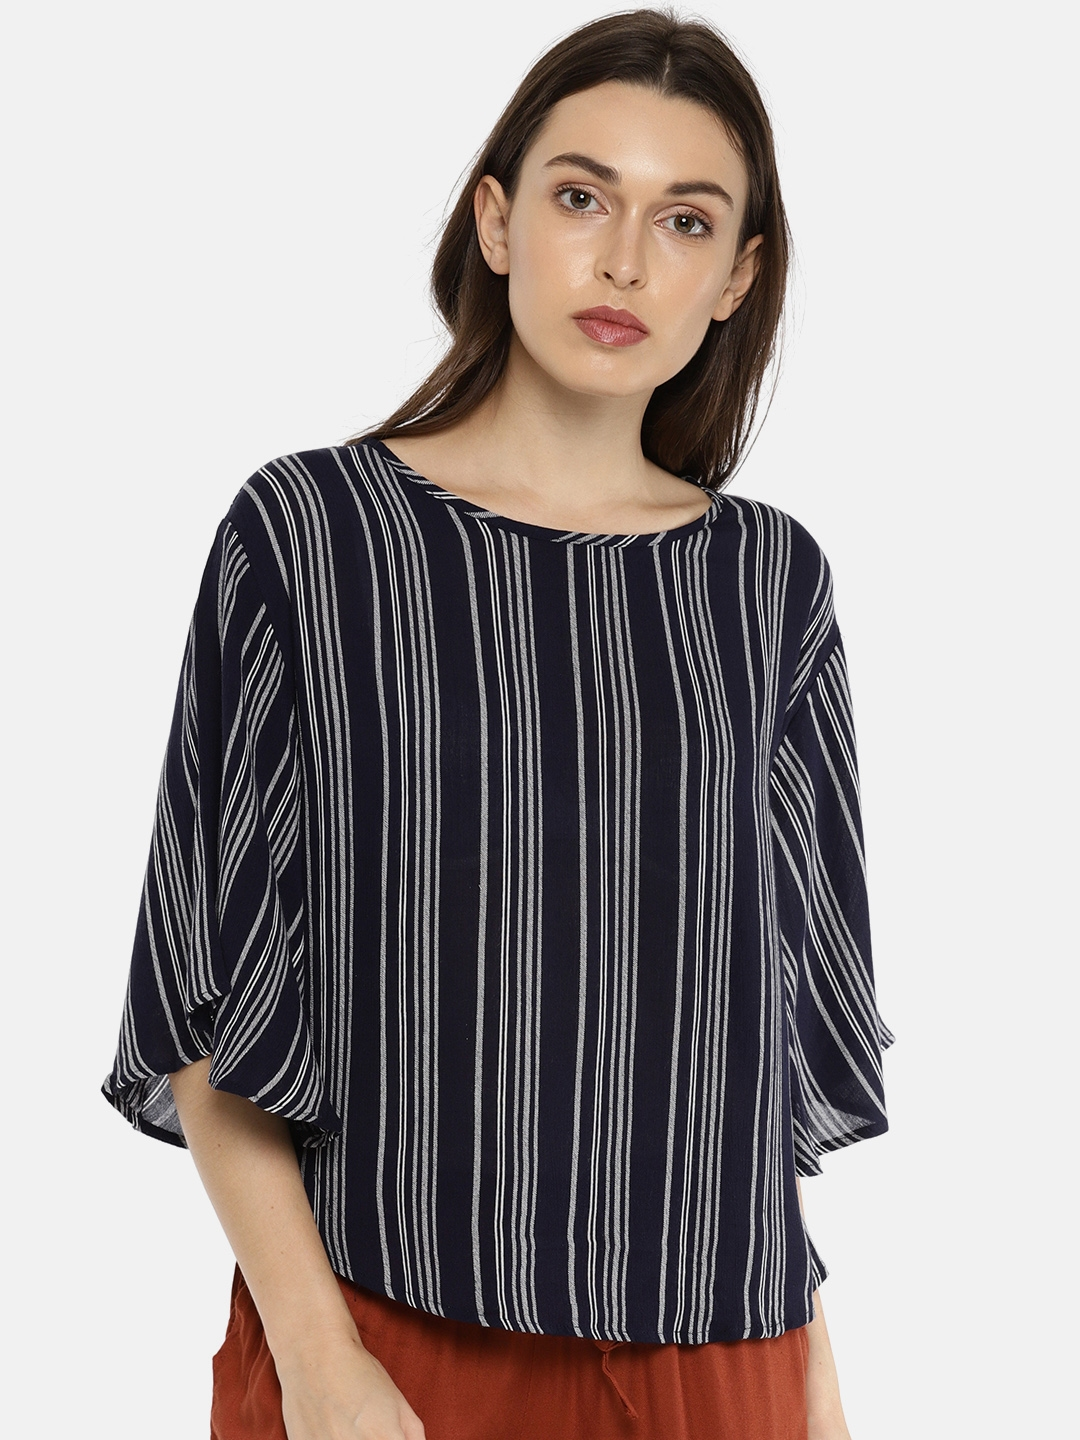 7bfa8232ef Buy Fame Forever By Lifestyle Women Navy & White Striped Top - Tops ...